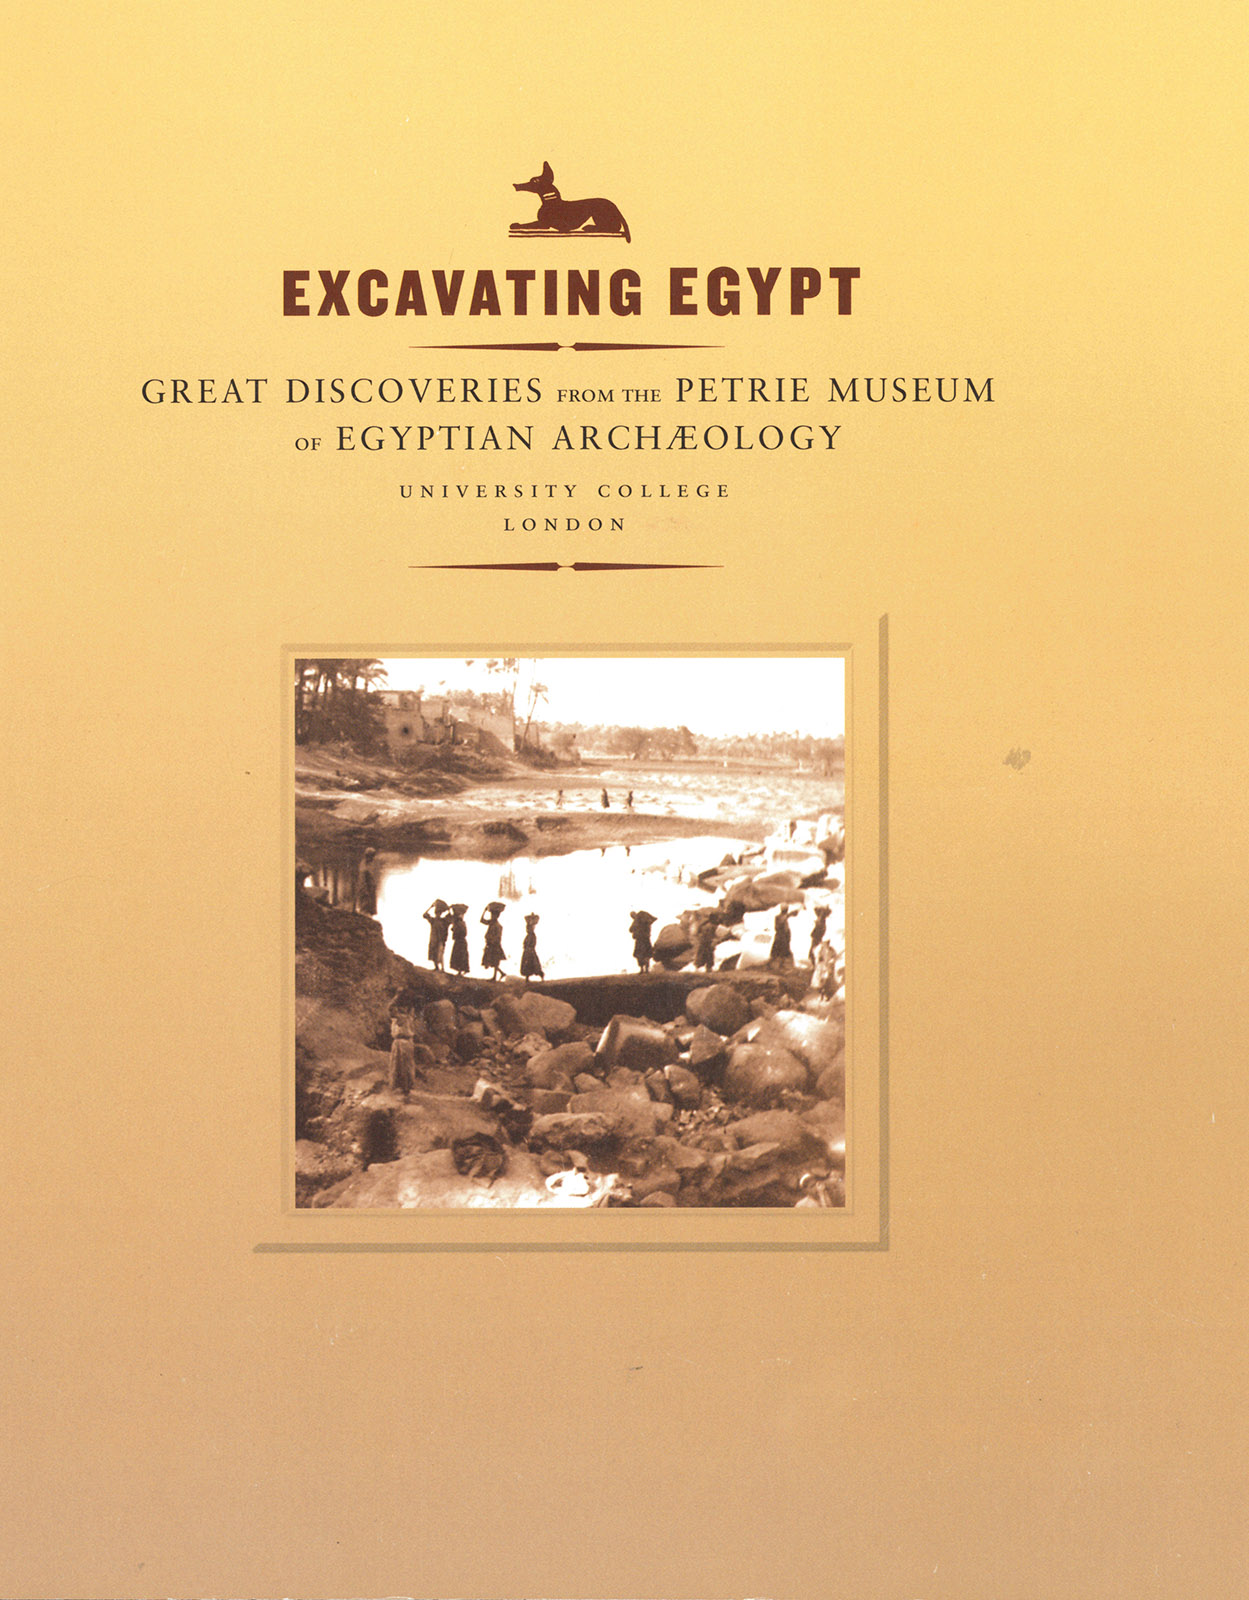 Excavating Egypt